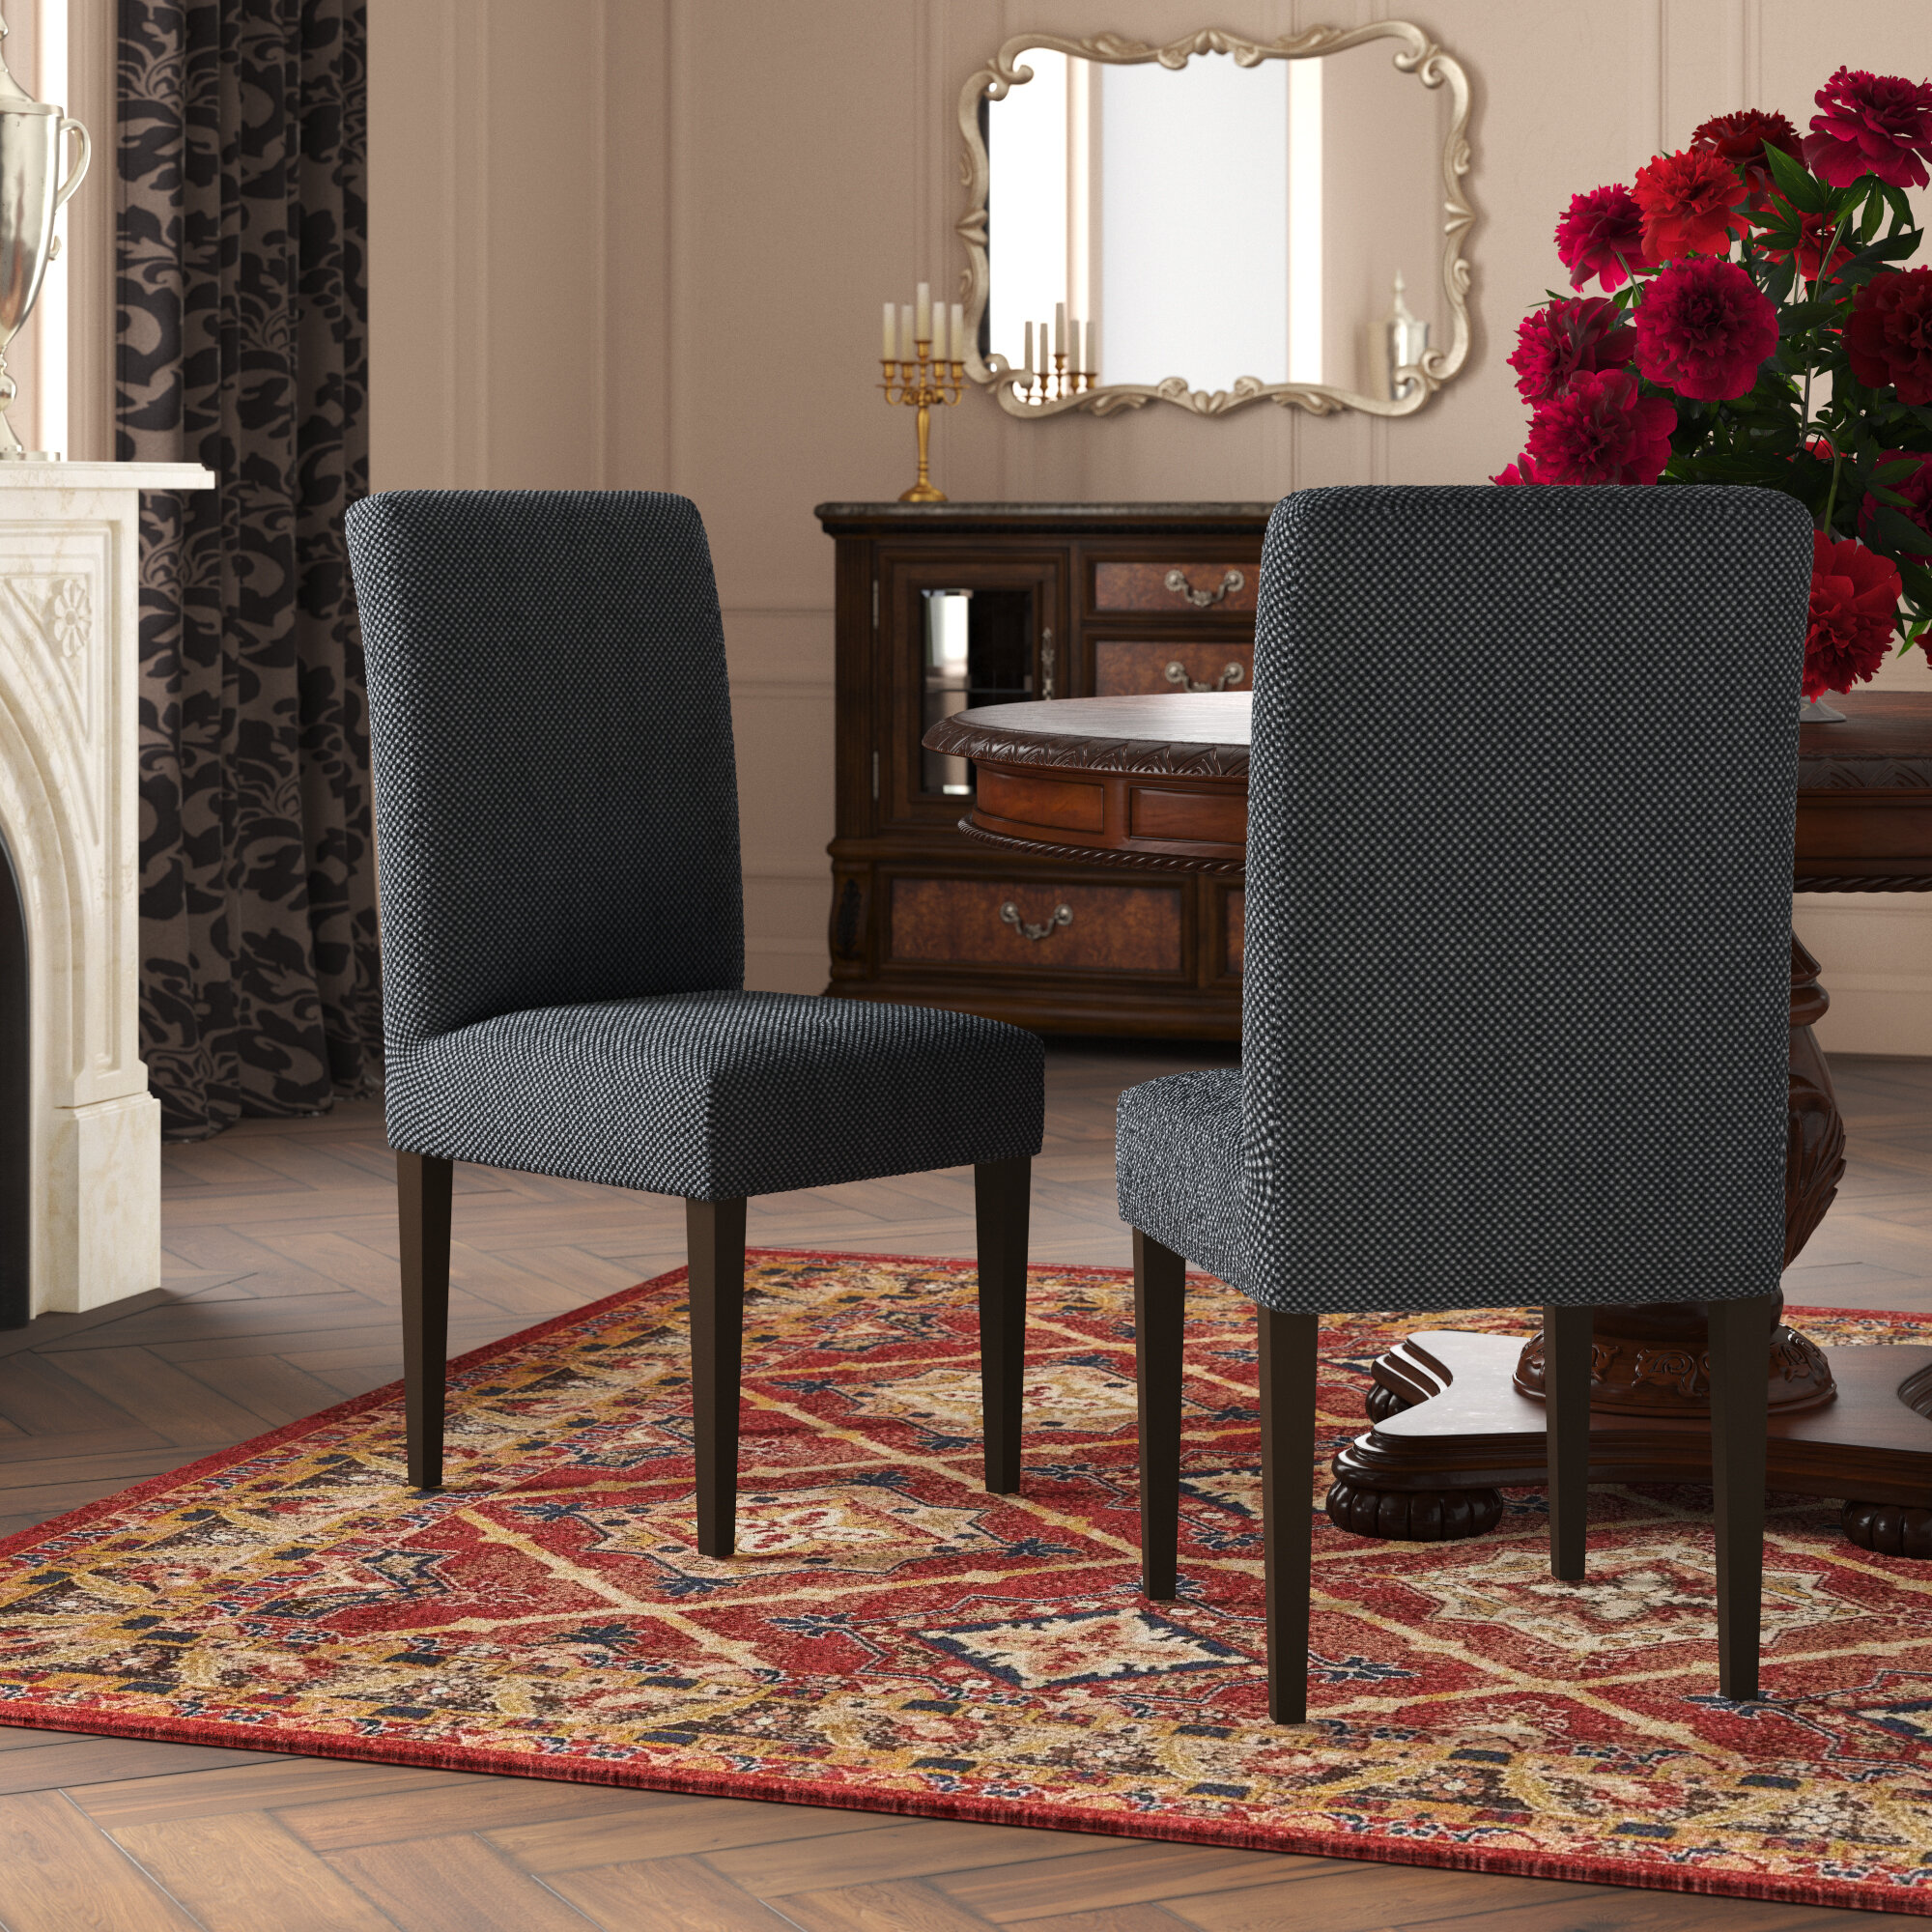 Kitchen & Dining Chair Covers | Wayfair